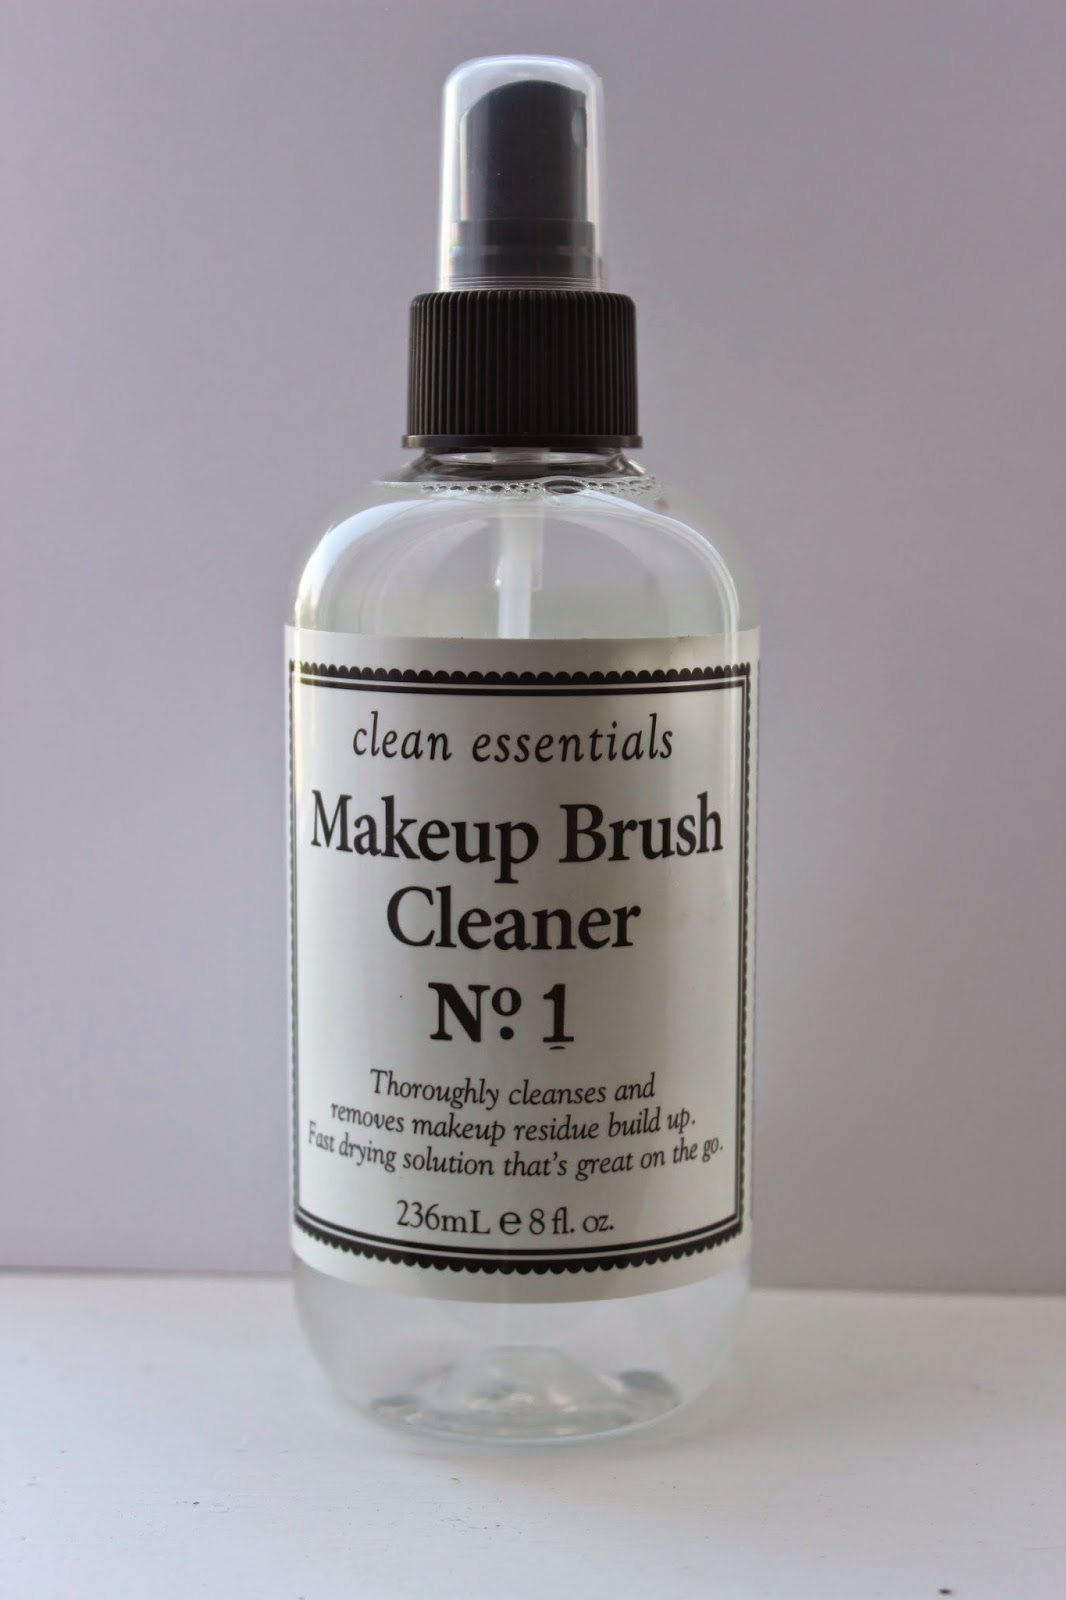 Clean Essential Makeup Brush Cleaner No.1 Reviews In